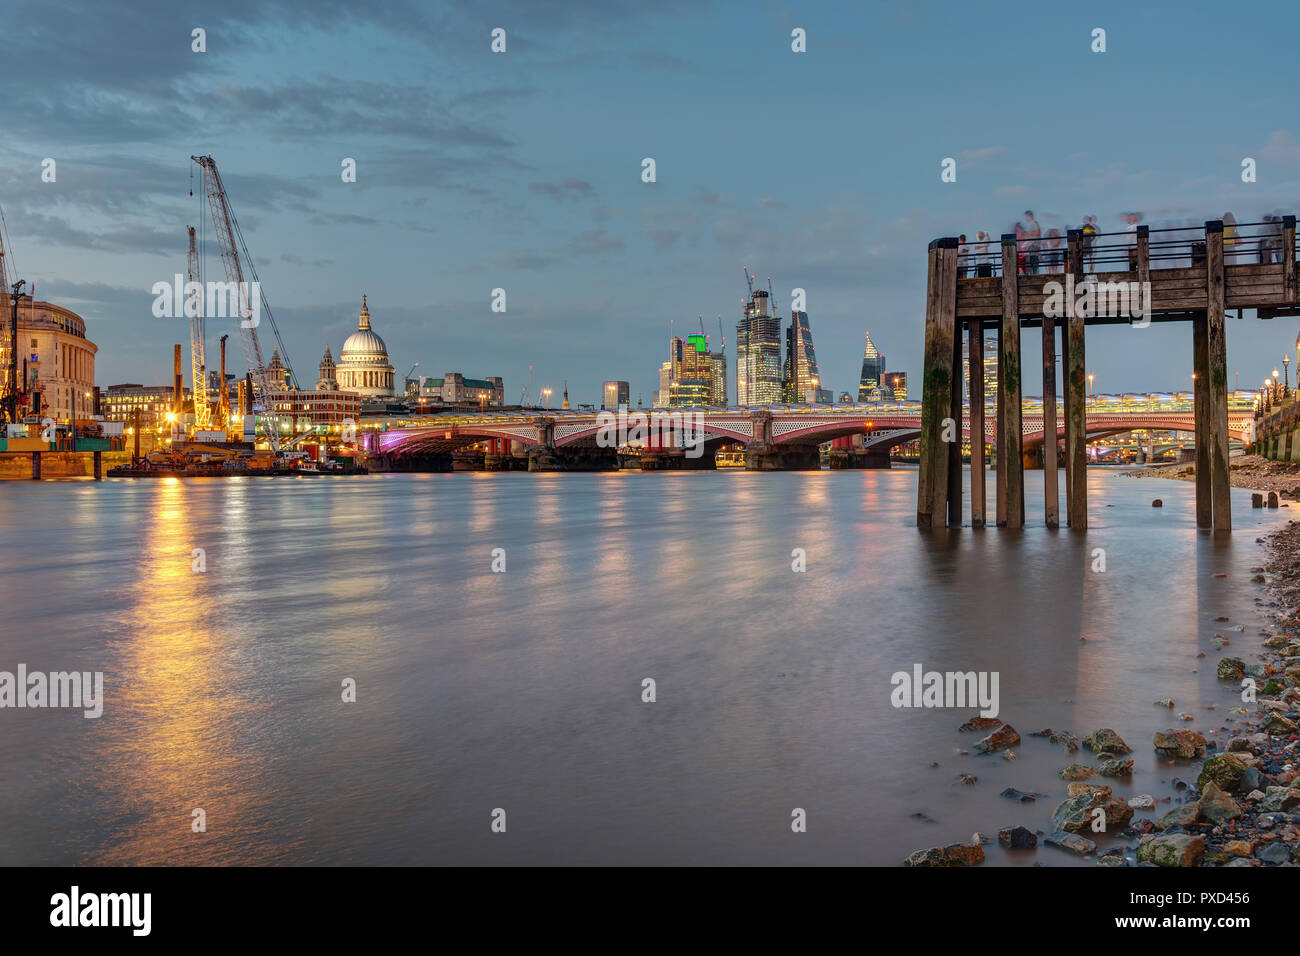 An old pier, the St Pauls cathedral, Blackfriars Bridge and the City of London at dusk - Stock Image